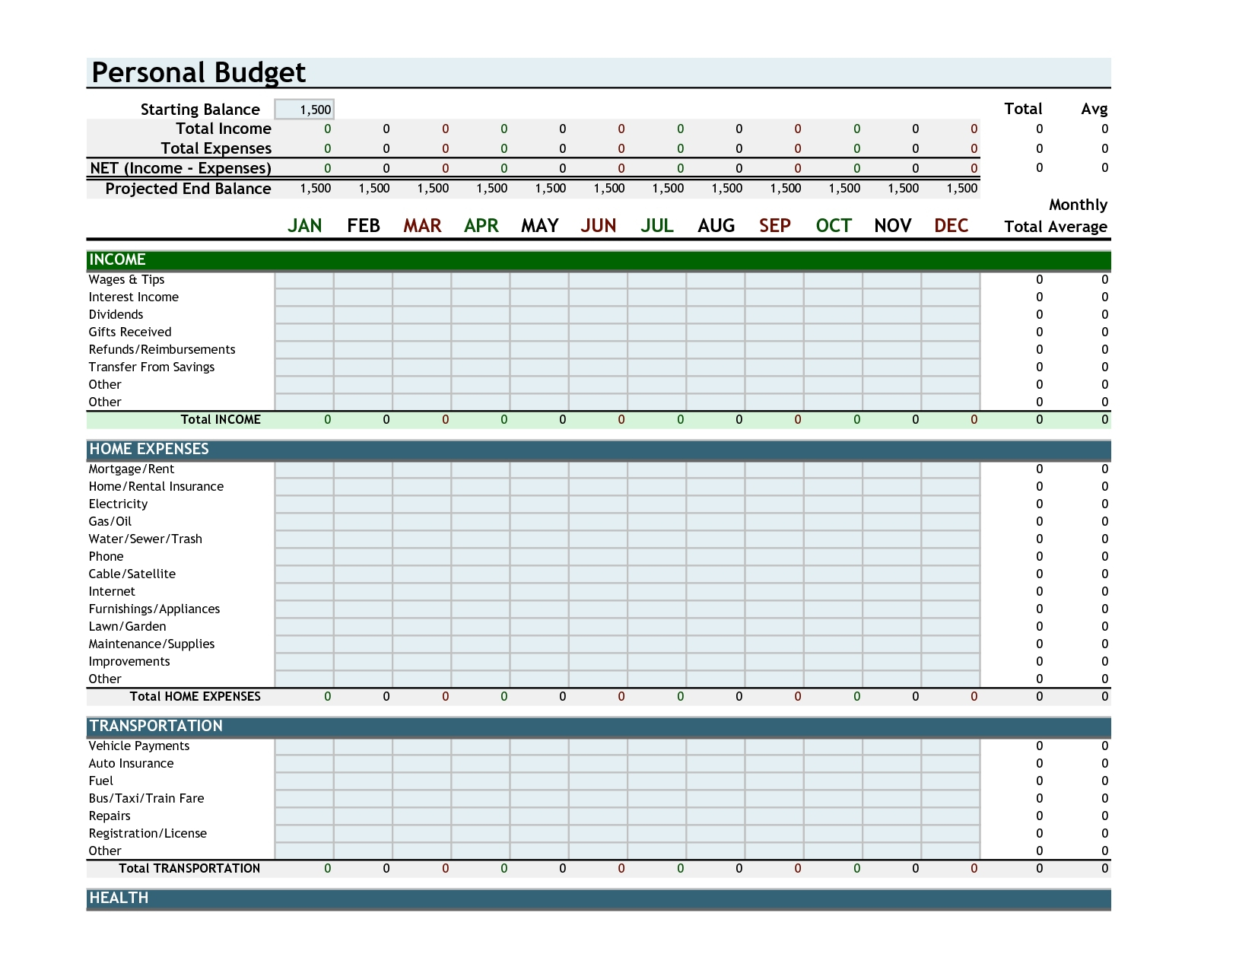 Personal Budget Template Spreadsheet Examples Simple Beautiful In Sample Personal Budget Spreadsheet